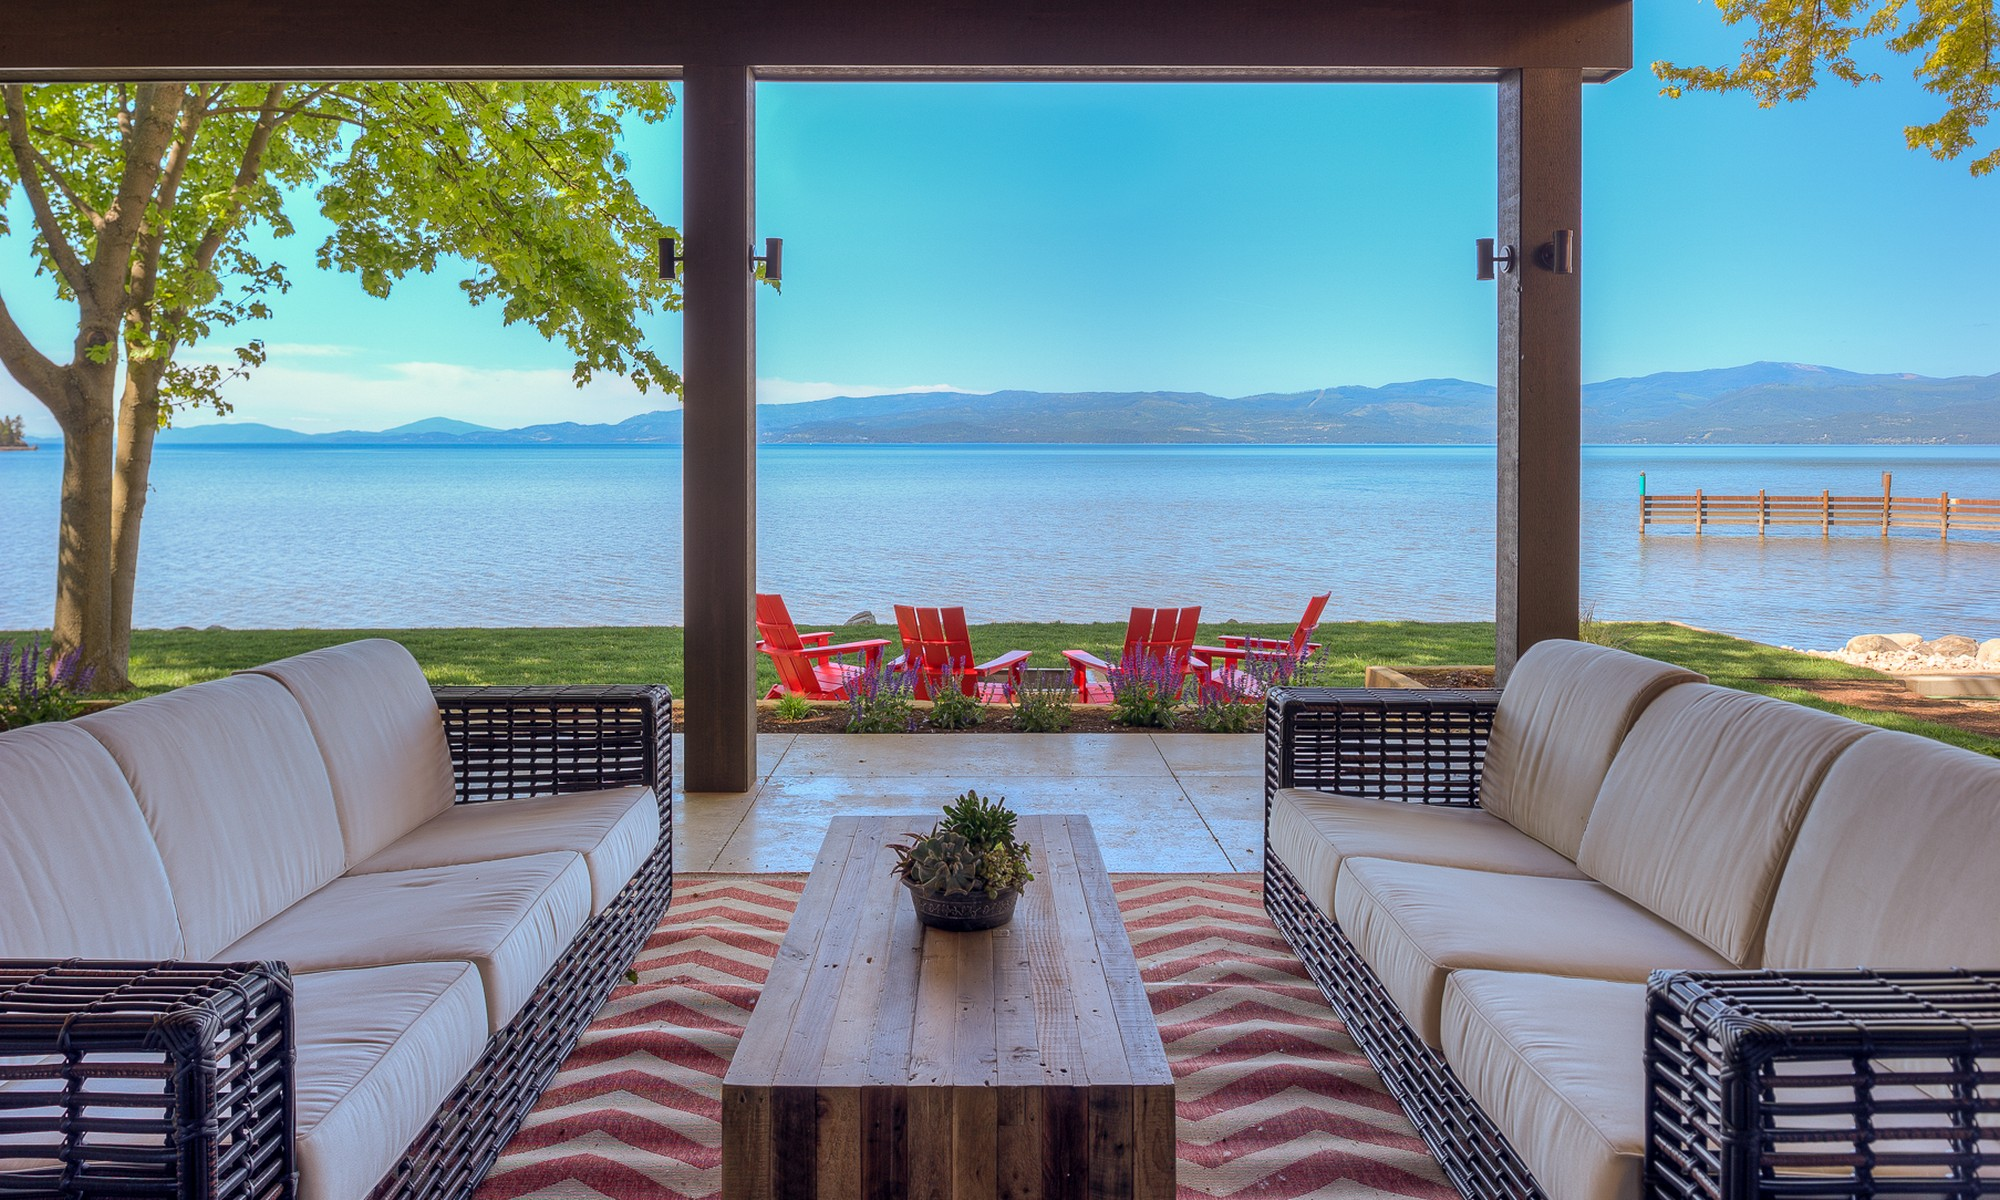 Casa Unifamiliar por un Venta en Flathead Lake Contemporary 62 Rivers Bigfork, Montana, 59911 Estados Unidos